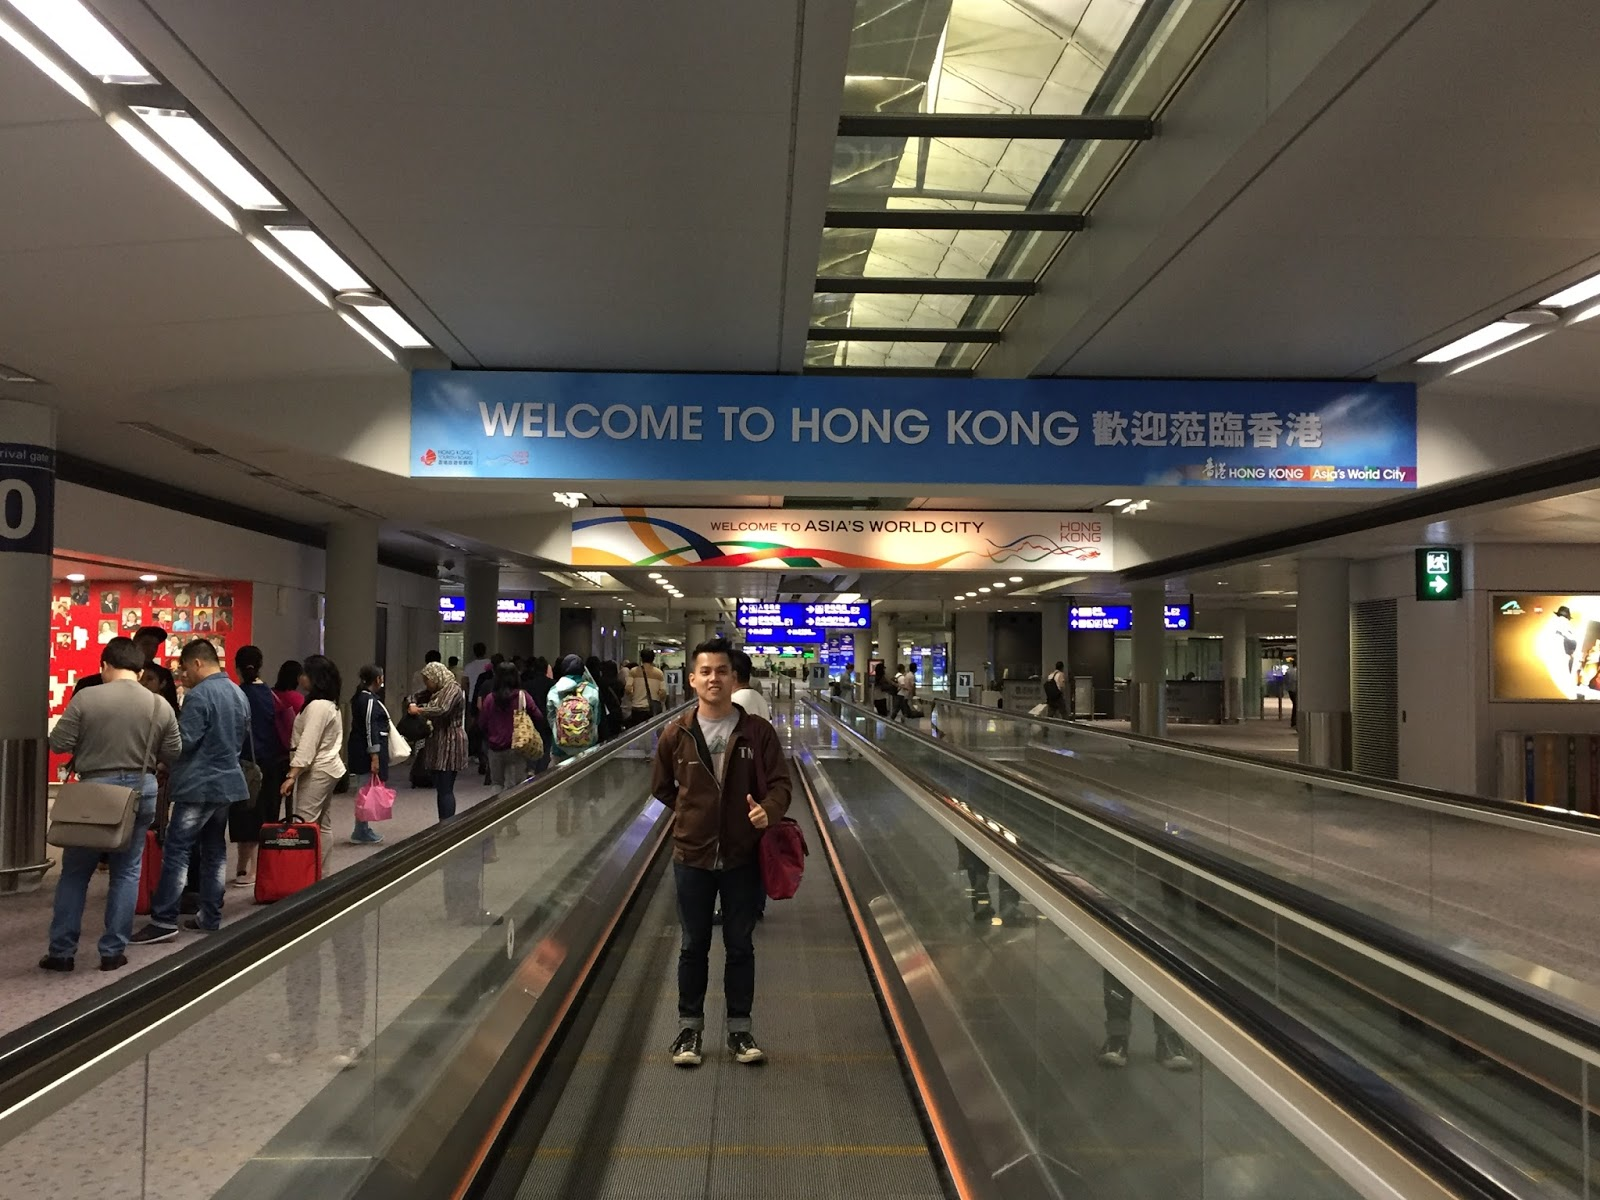 Taking some pictures at Hong Kong International Airport.